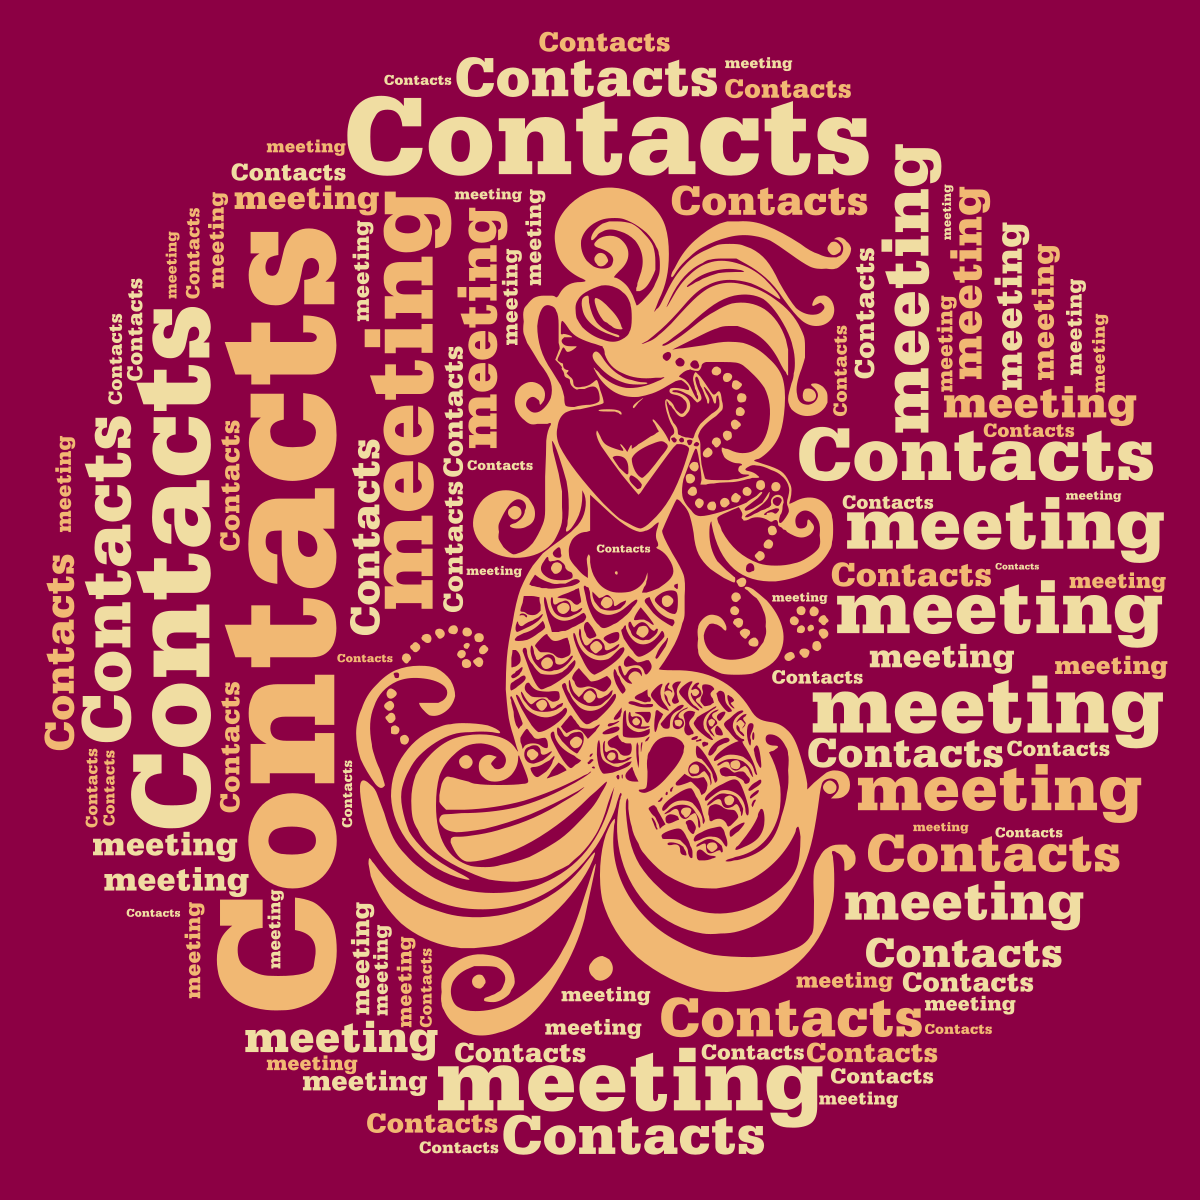 Contacts meeting